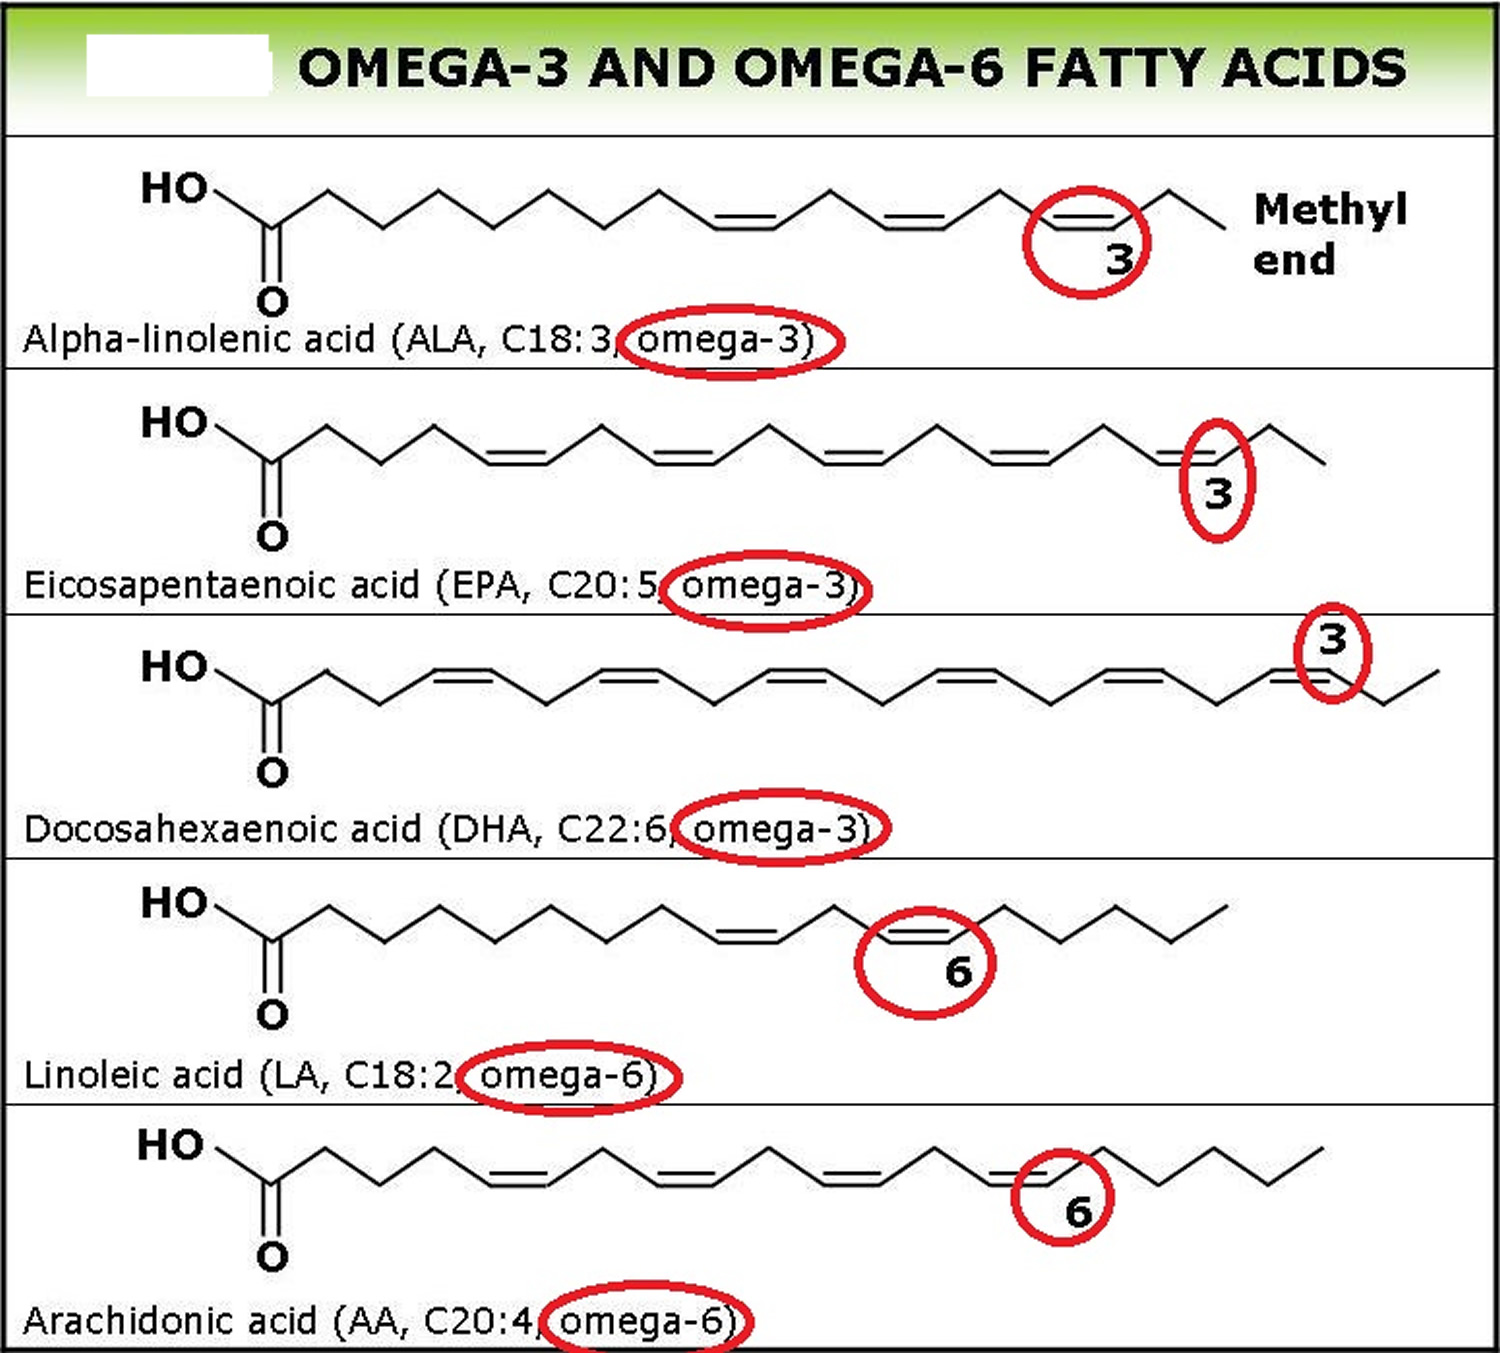 omega-3 and omega-6 fatty acids structure